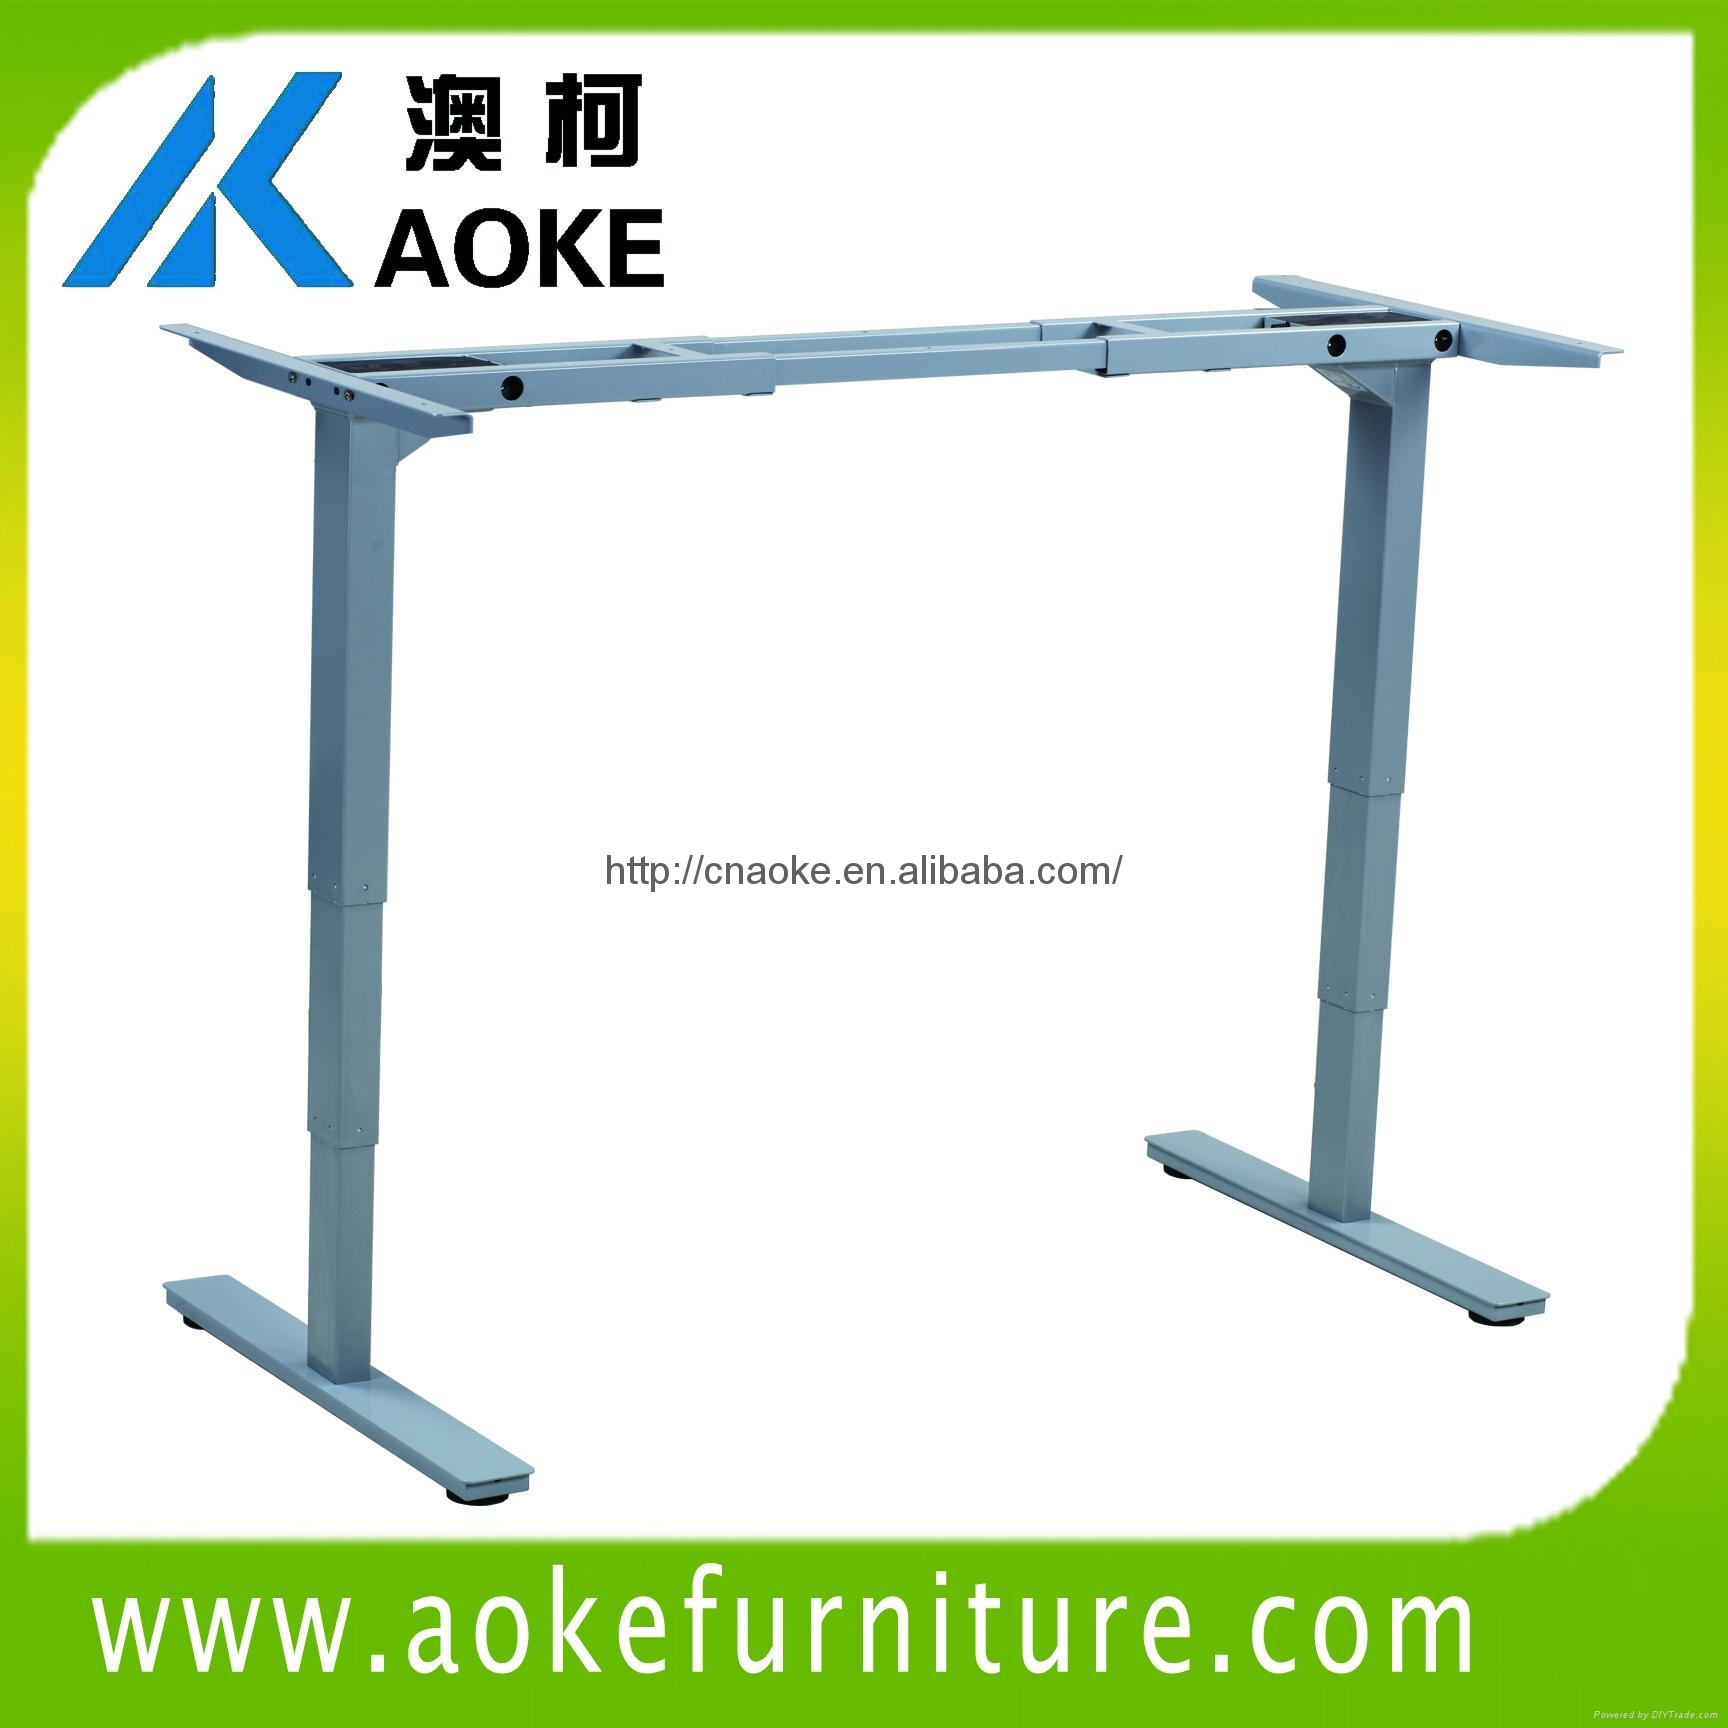 Aoke Ak2rt Db3 Sit To Stand Desk China Manufacturer